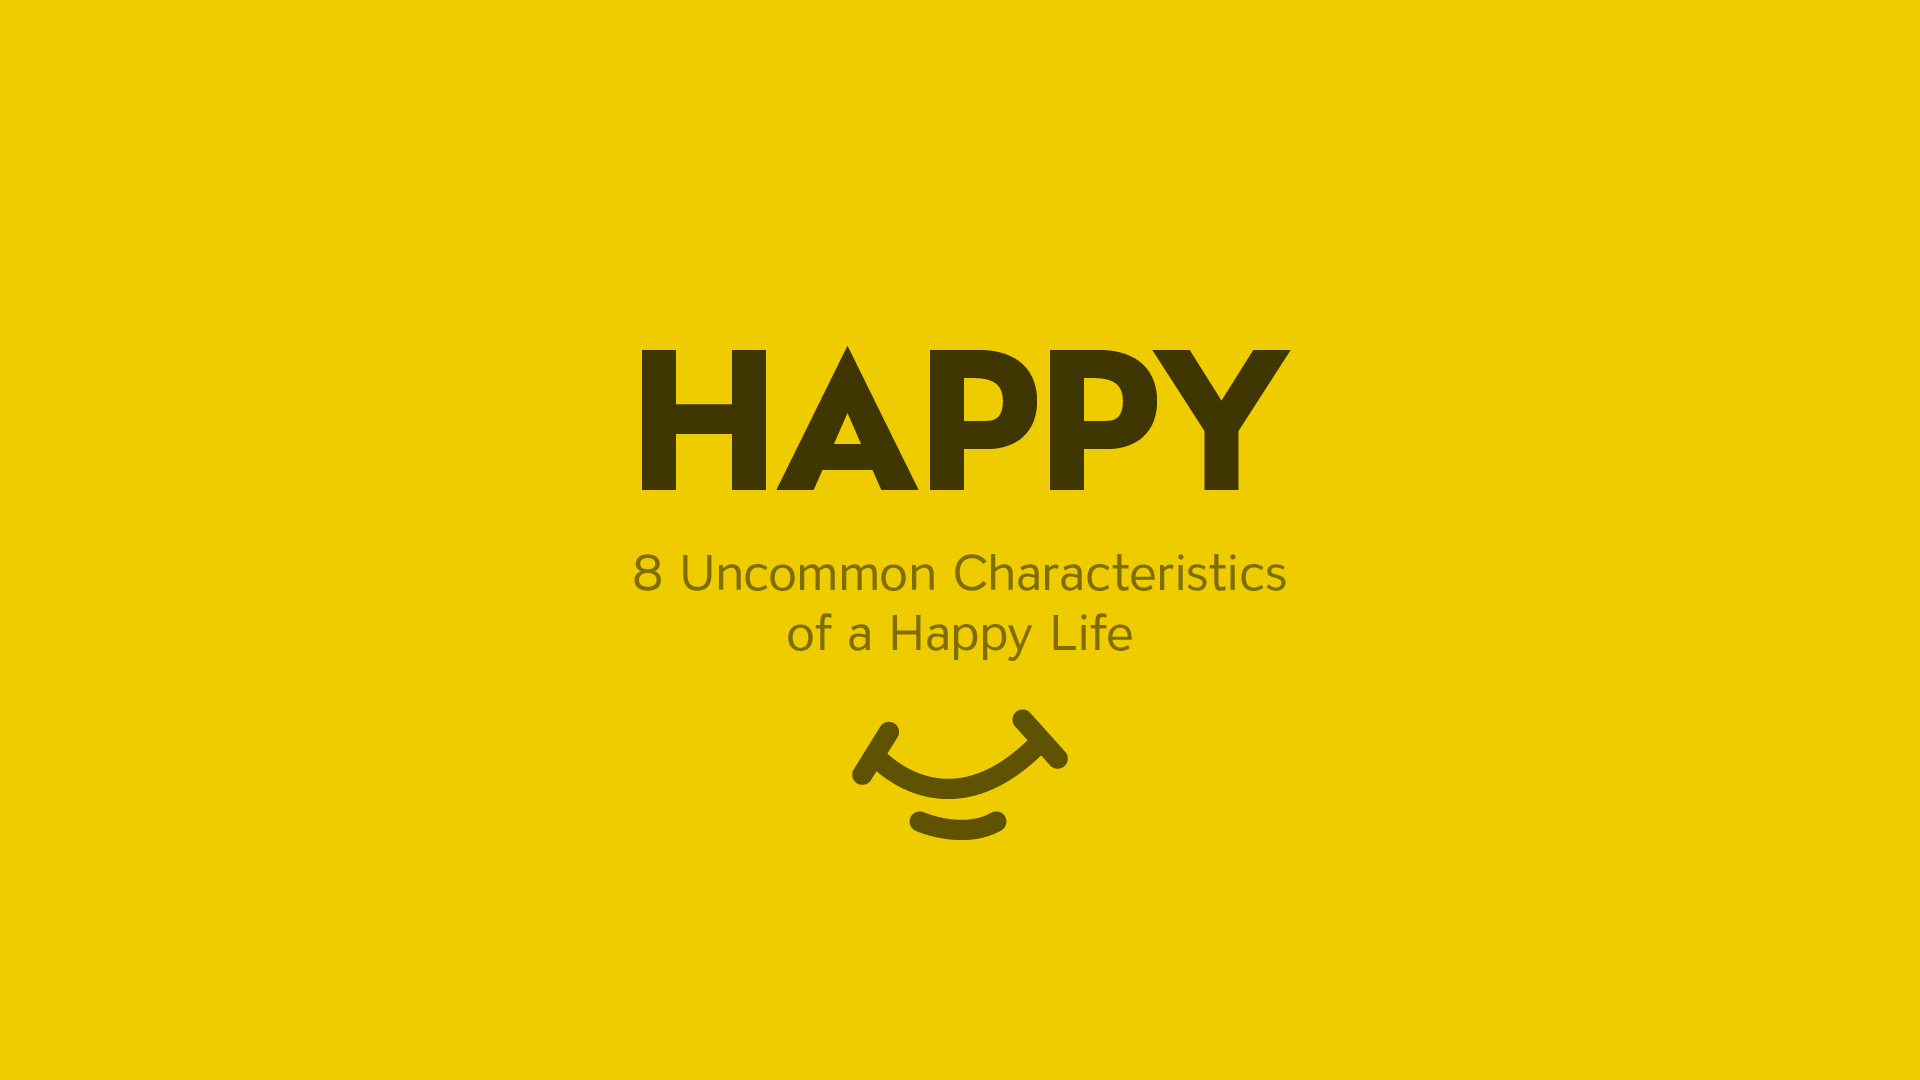 Happy-HD.jpg